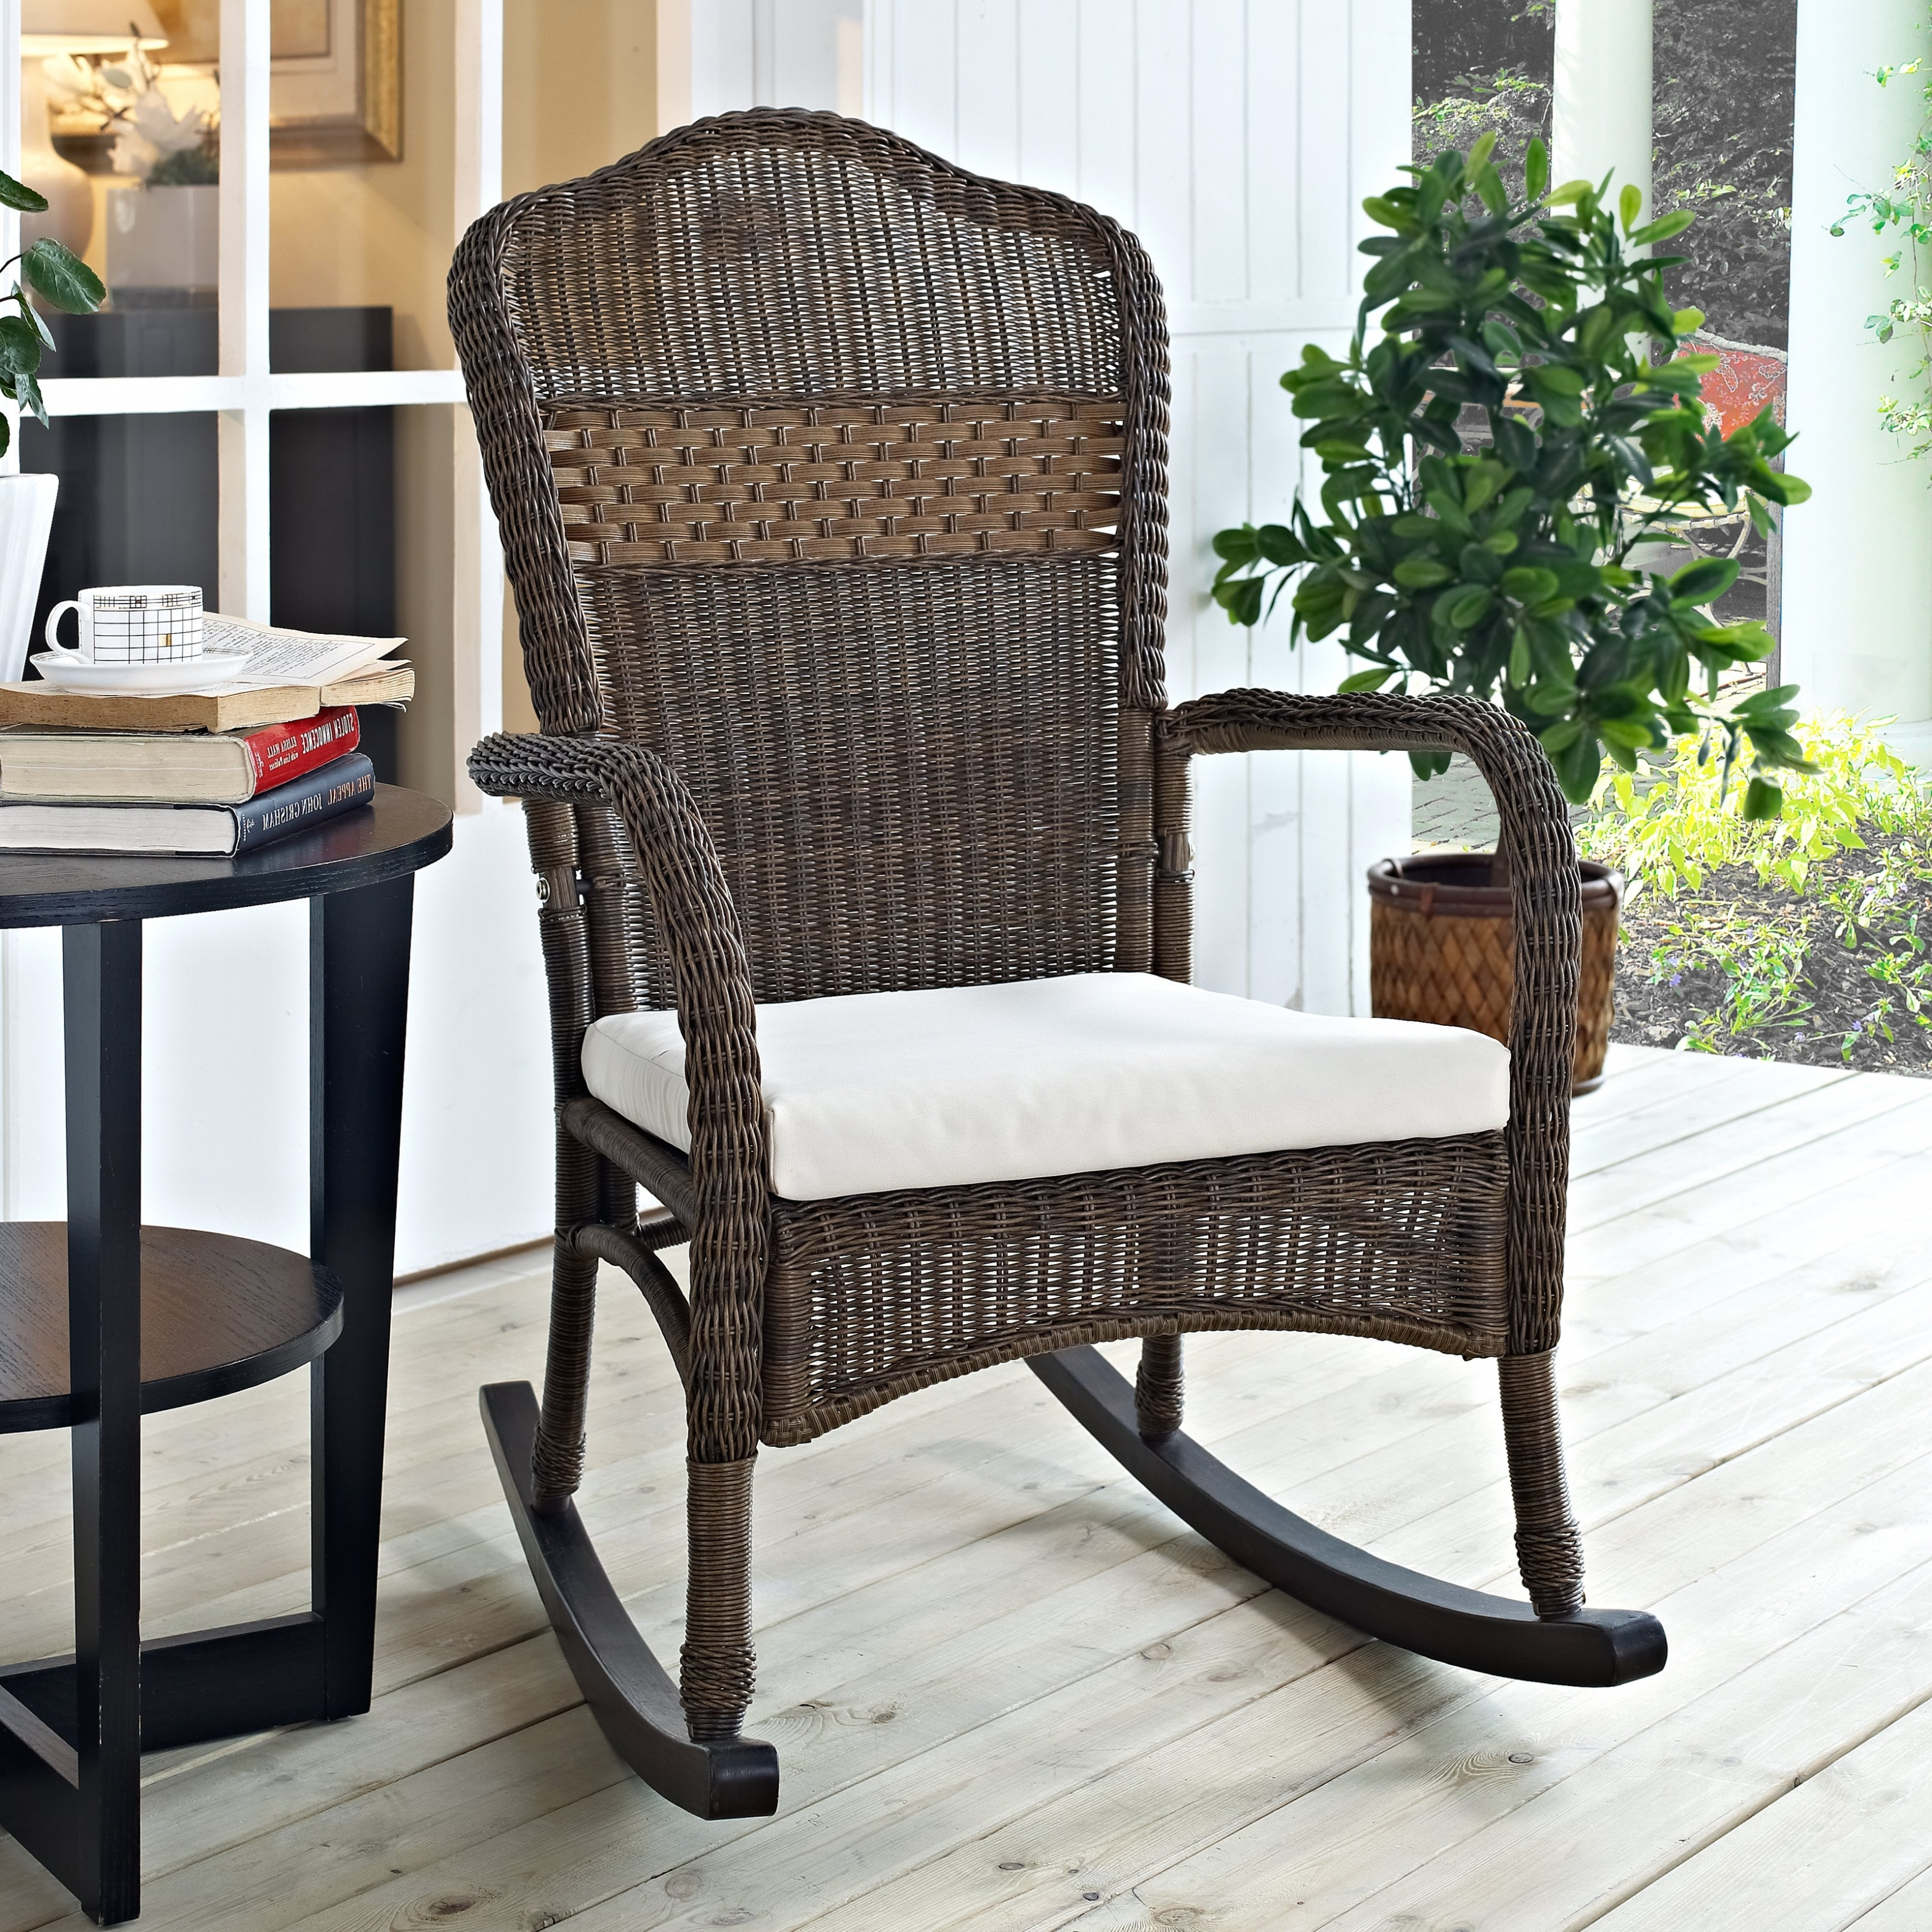 Outdoor Rocking Chairs With Cushions Regarding Popular Chairs: Coral Coast Casco Bay Resin Wicker Rocking Chair With (View 15 of 15)